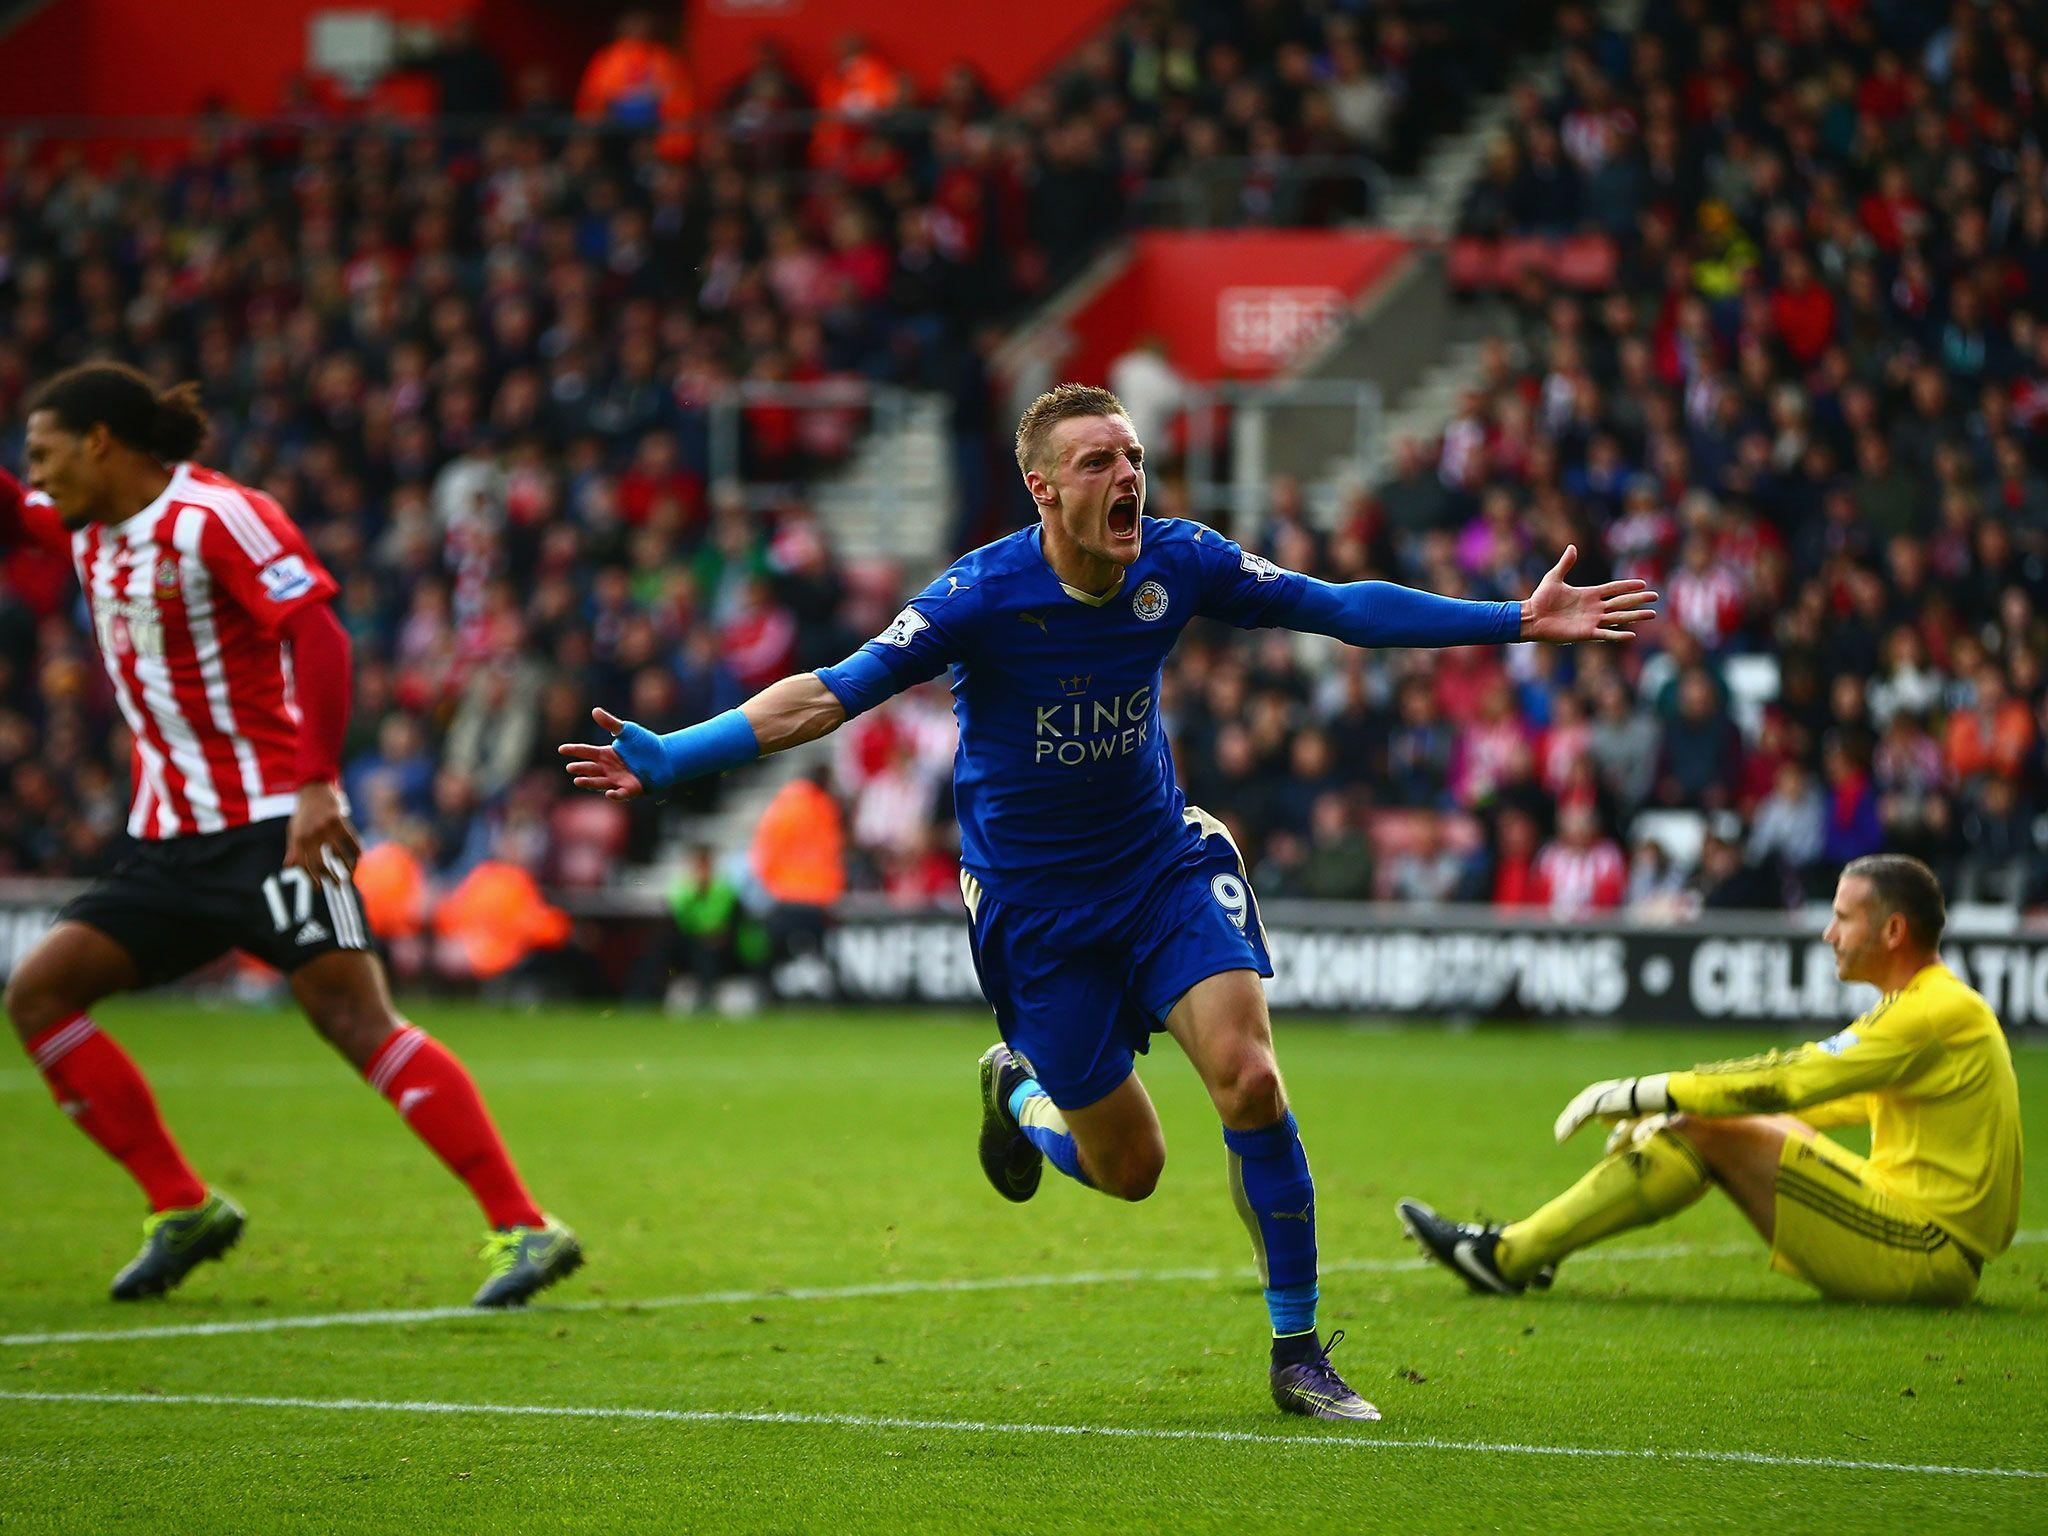 Southampton vs Leicester City match report: Jamie Vardy double ...